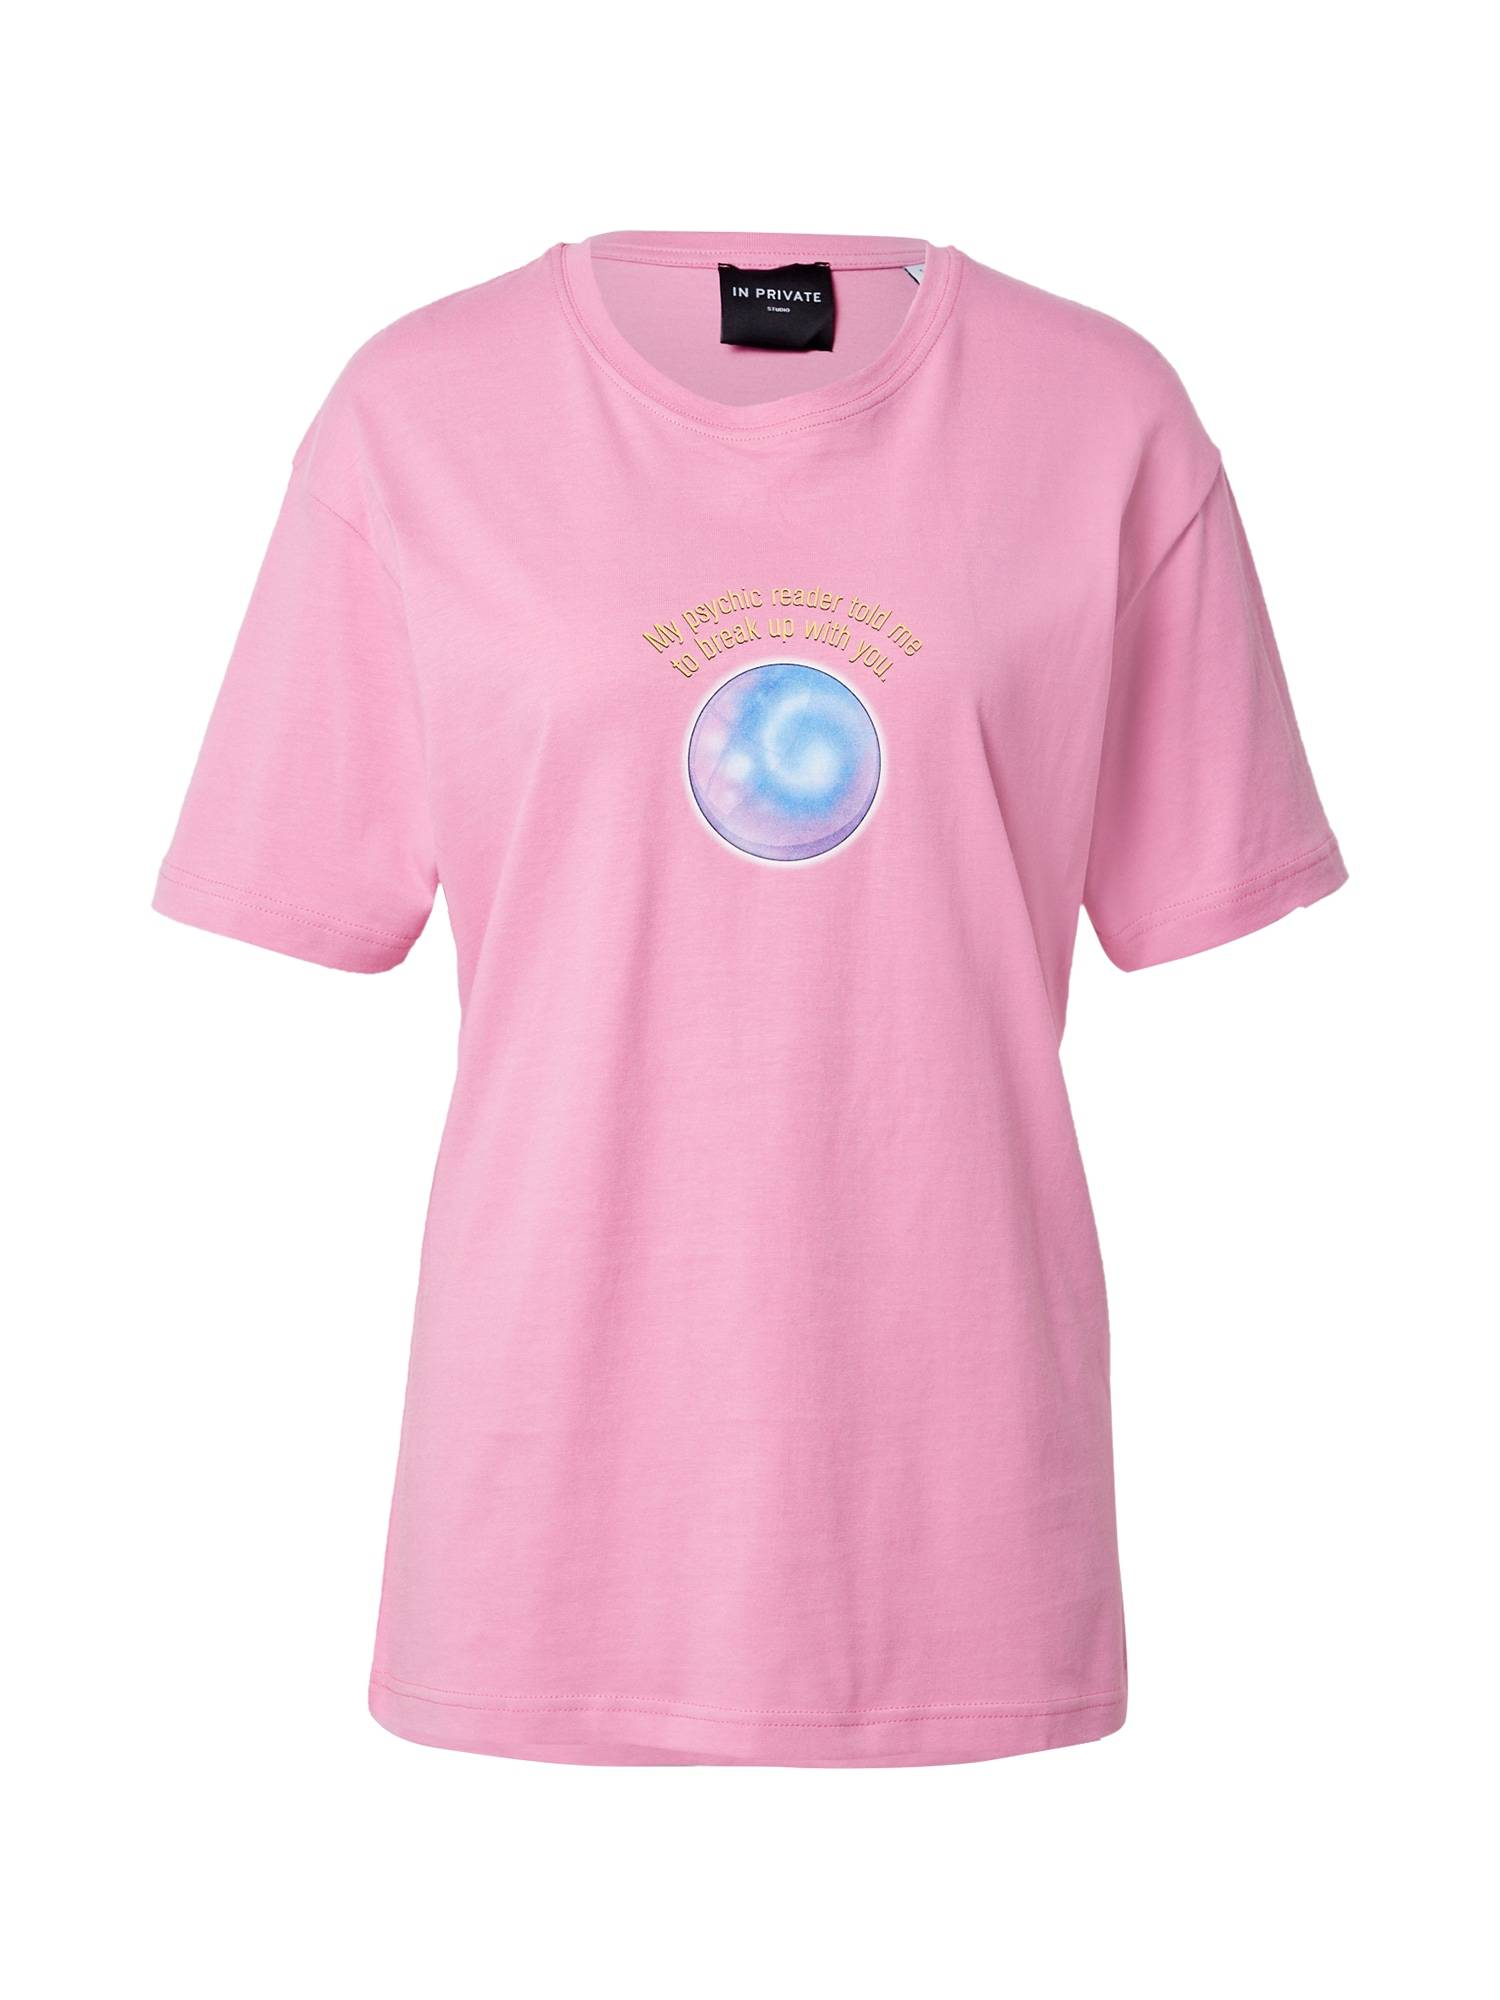 IN PRIVATE Studio T-shirt 'BIANCA'S'  - Rose - Taille: S - female